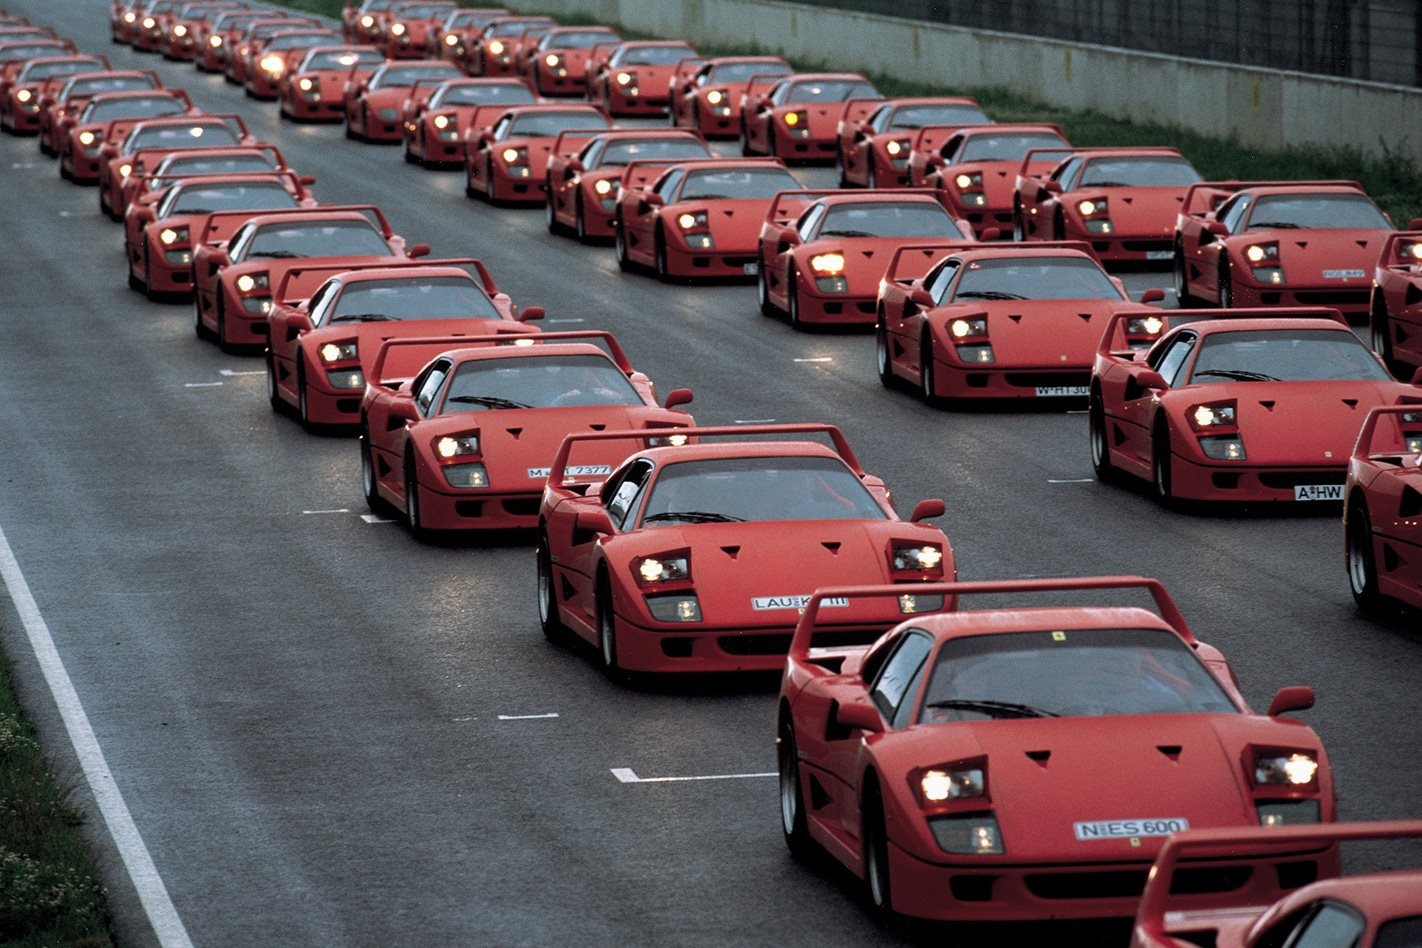 Ferrari Club gathering in Germany 1992